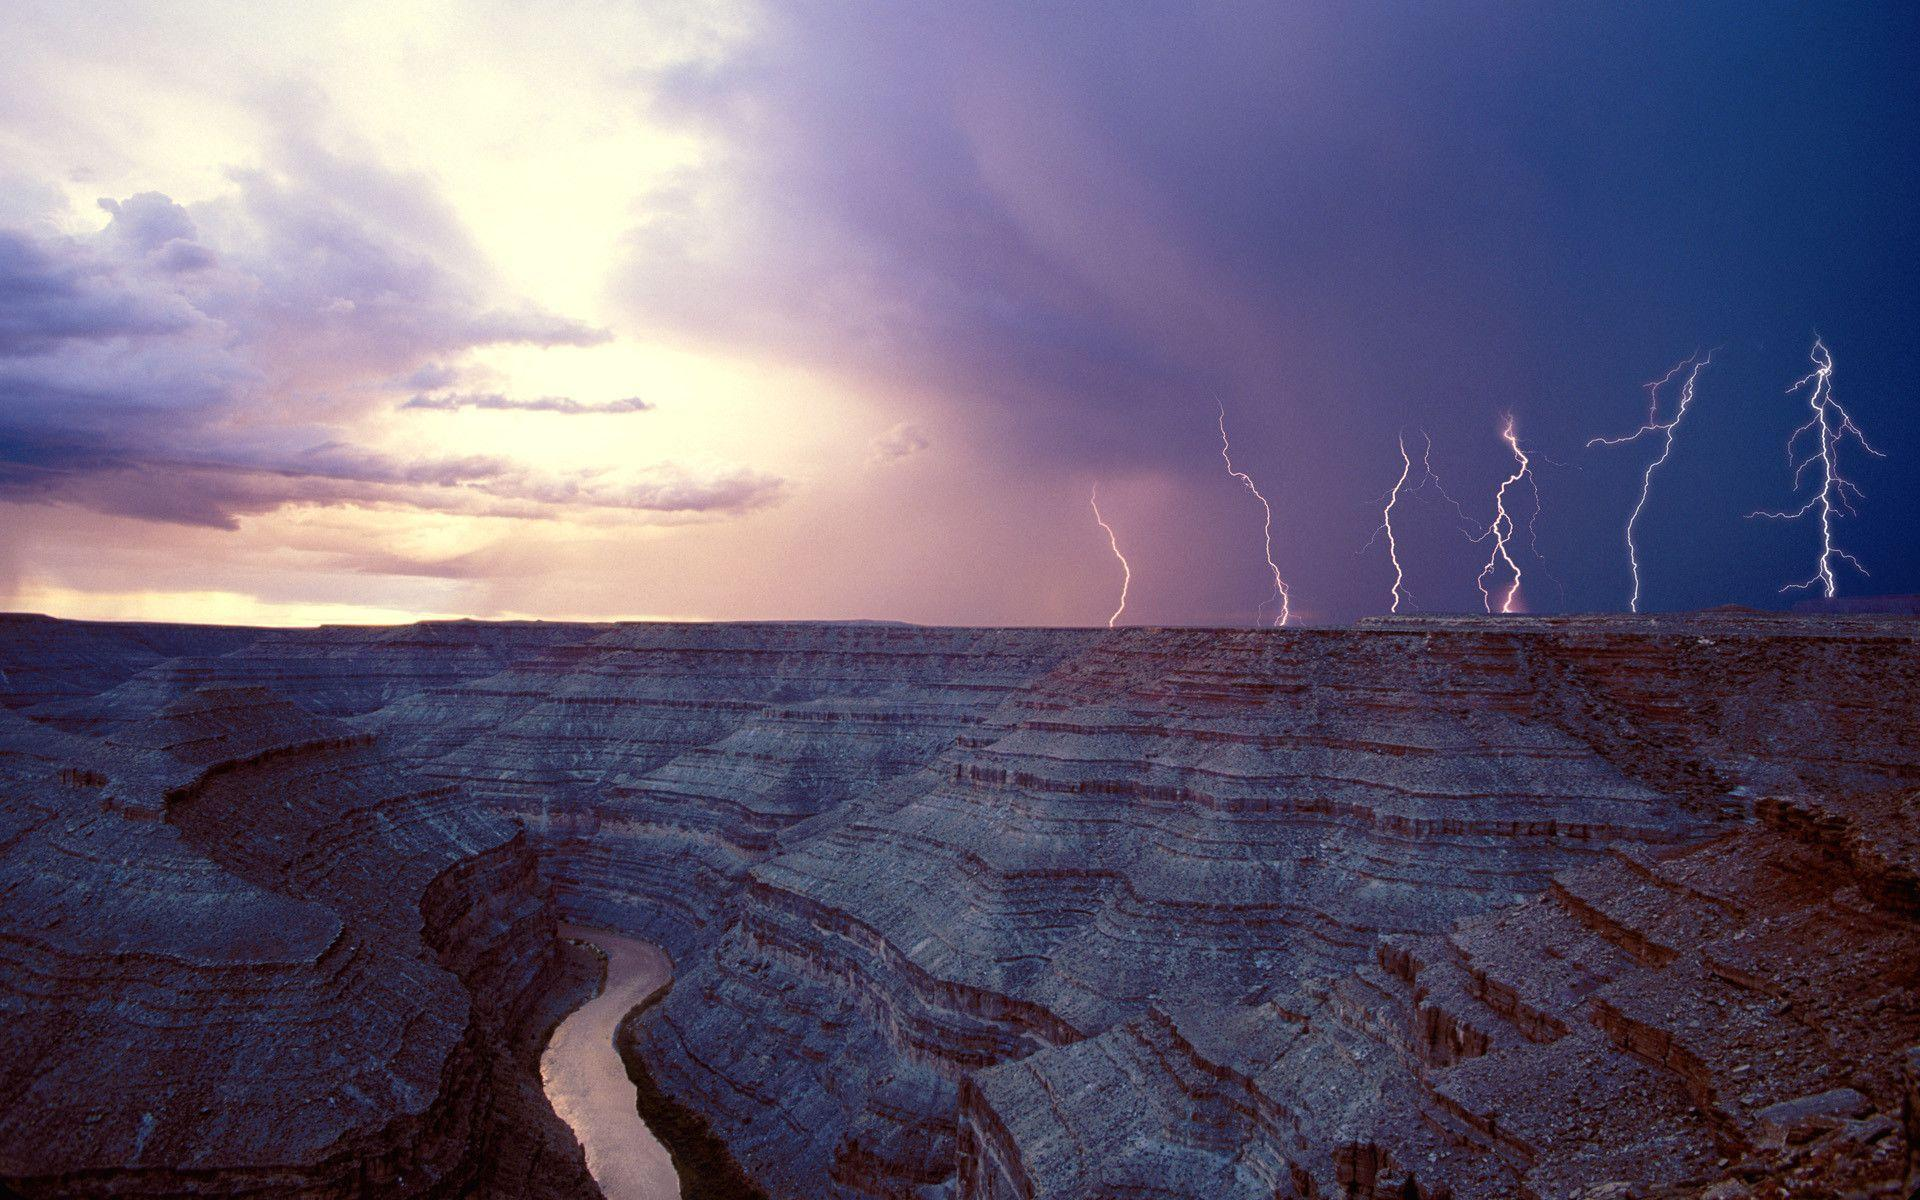 Wallpapers For > Lightning Storm Wallpapers Hd